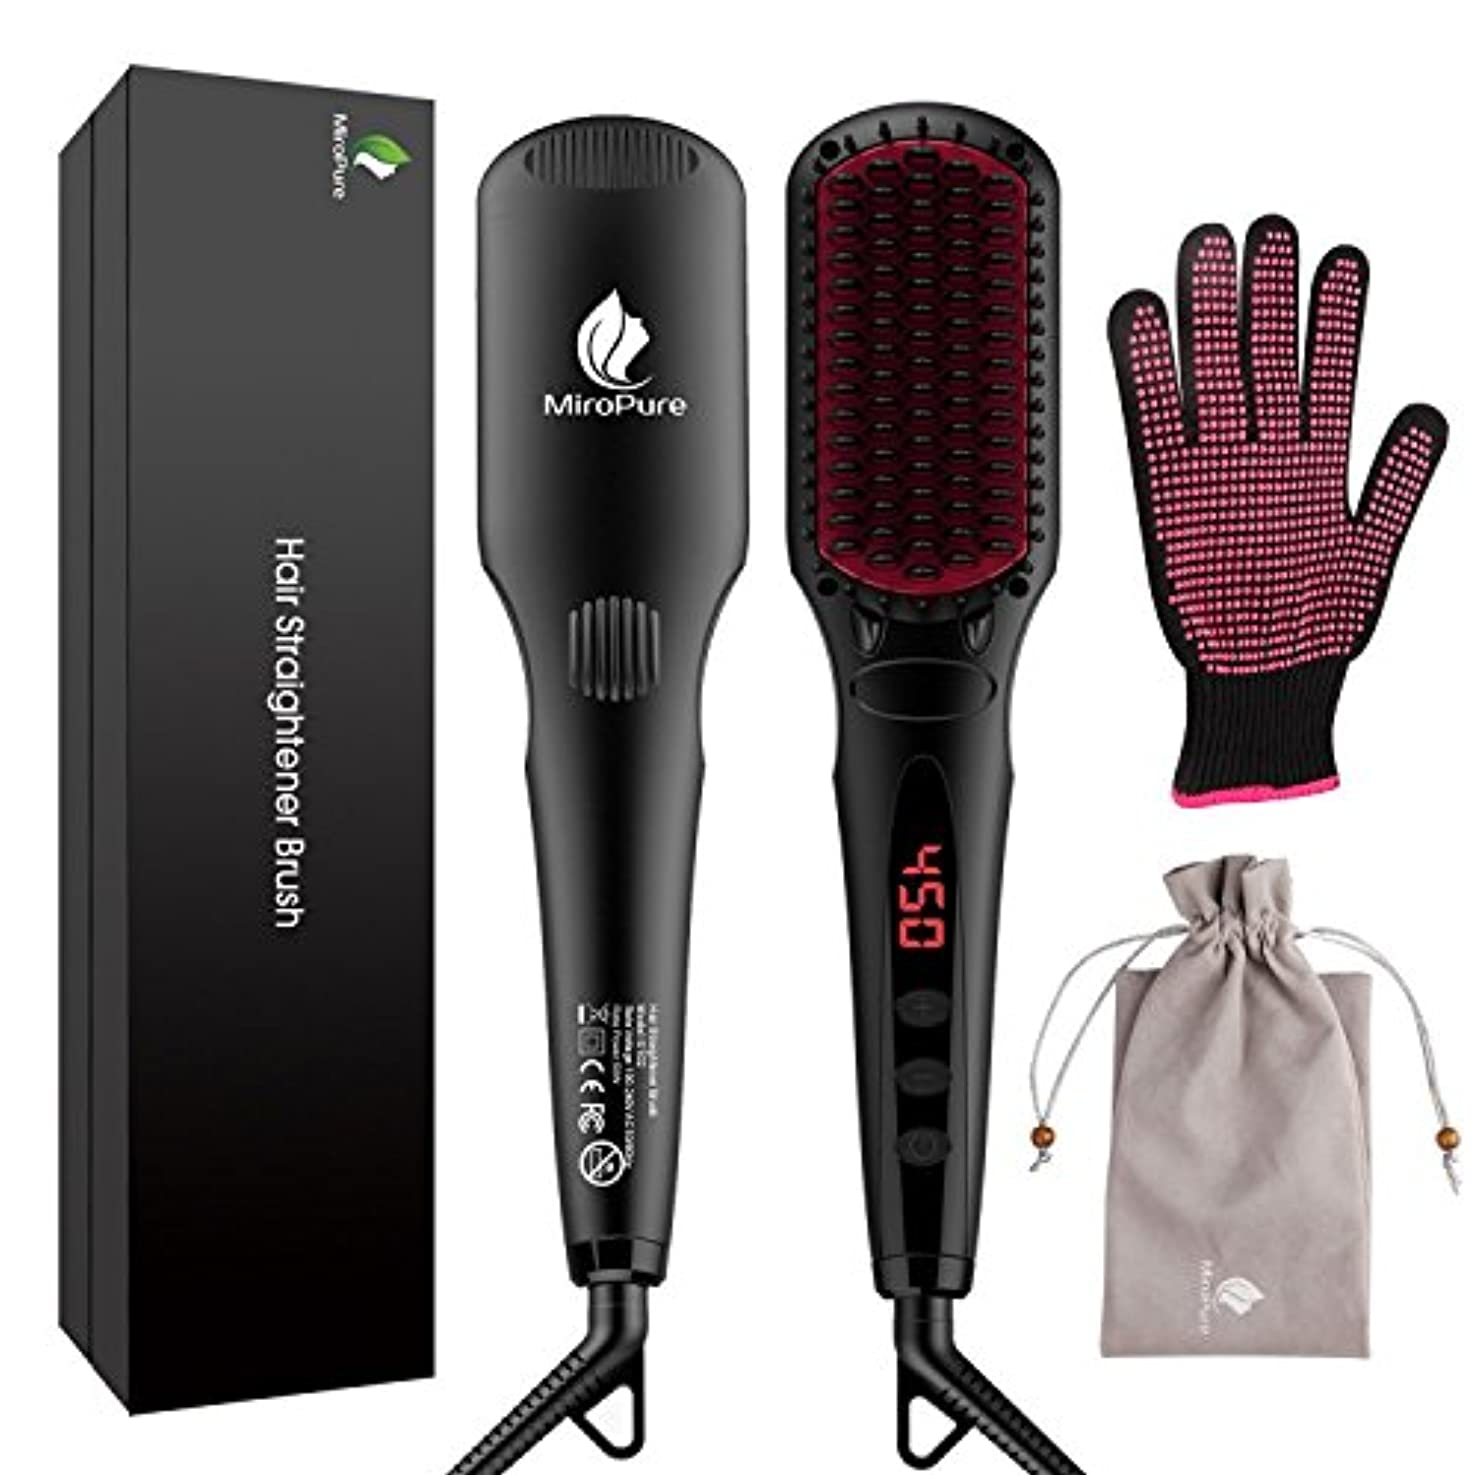 間に合わせ結婚した伝説MiroPure 2 in 1 Ionic Hair Straightener Brush ヘアストレートヘアブラシ with Heat Resistant Glove and Temperature Lock Function...